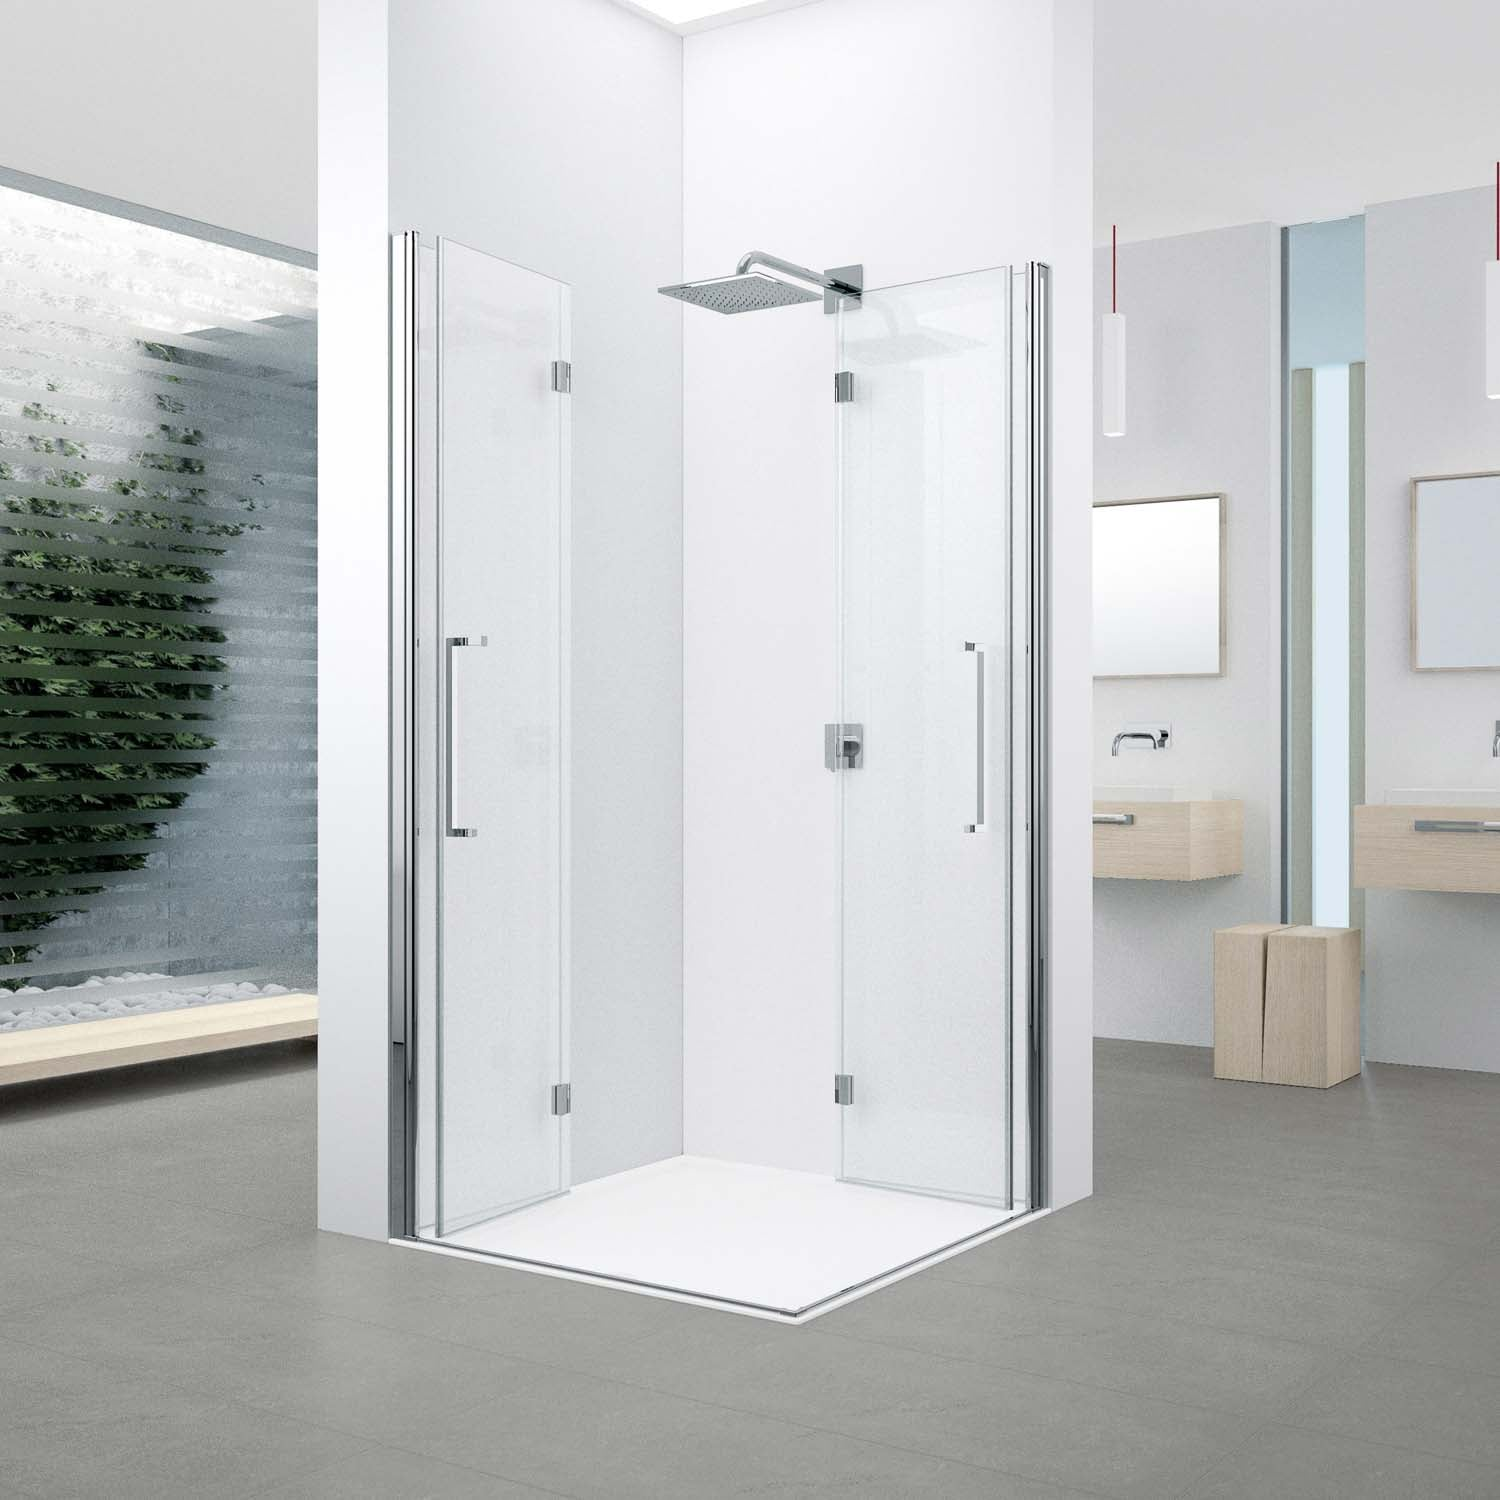 750-770mm Bliss Bi-folding Screen Frosted Glass with a chrome finish lifestyle image